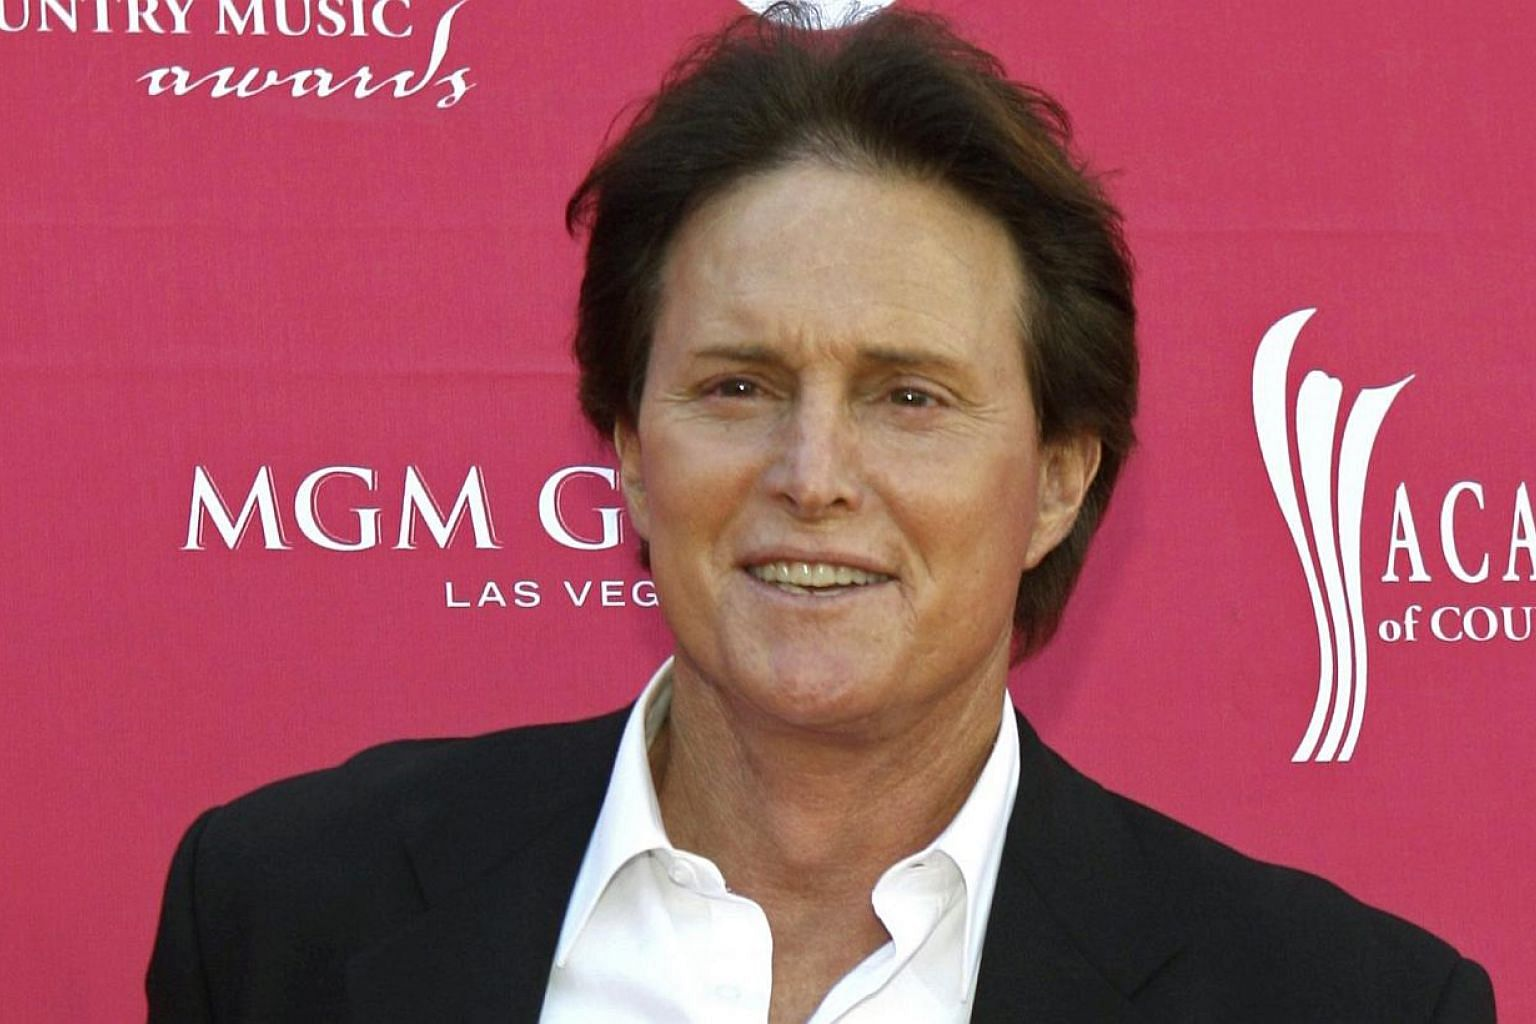 Caitlyn Jenner, then known as Bruce Jenner, in a 2009 photo. The Olympic champion turned transgender reality TV star has been sued again in connection with a February car crash in Malibu in which a 69-year-old woman died. -- PHOTO: REUTERS